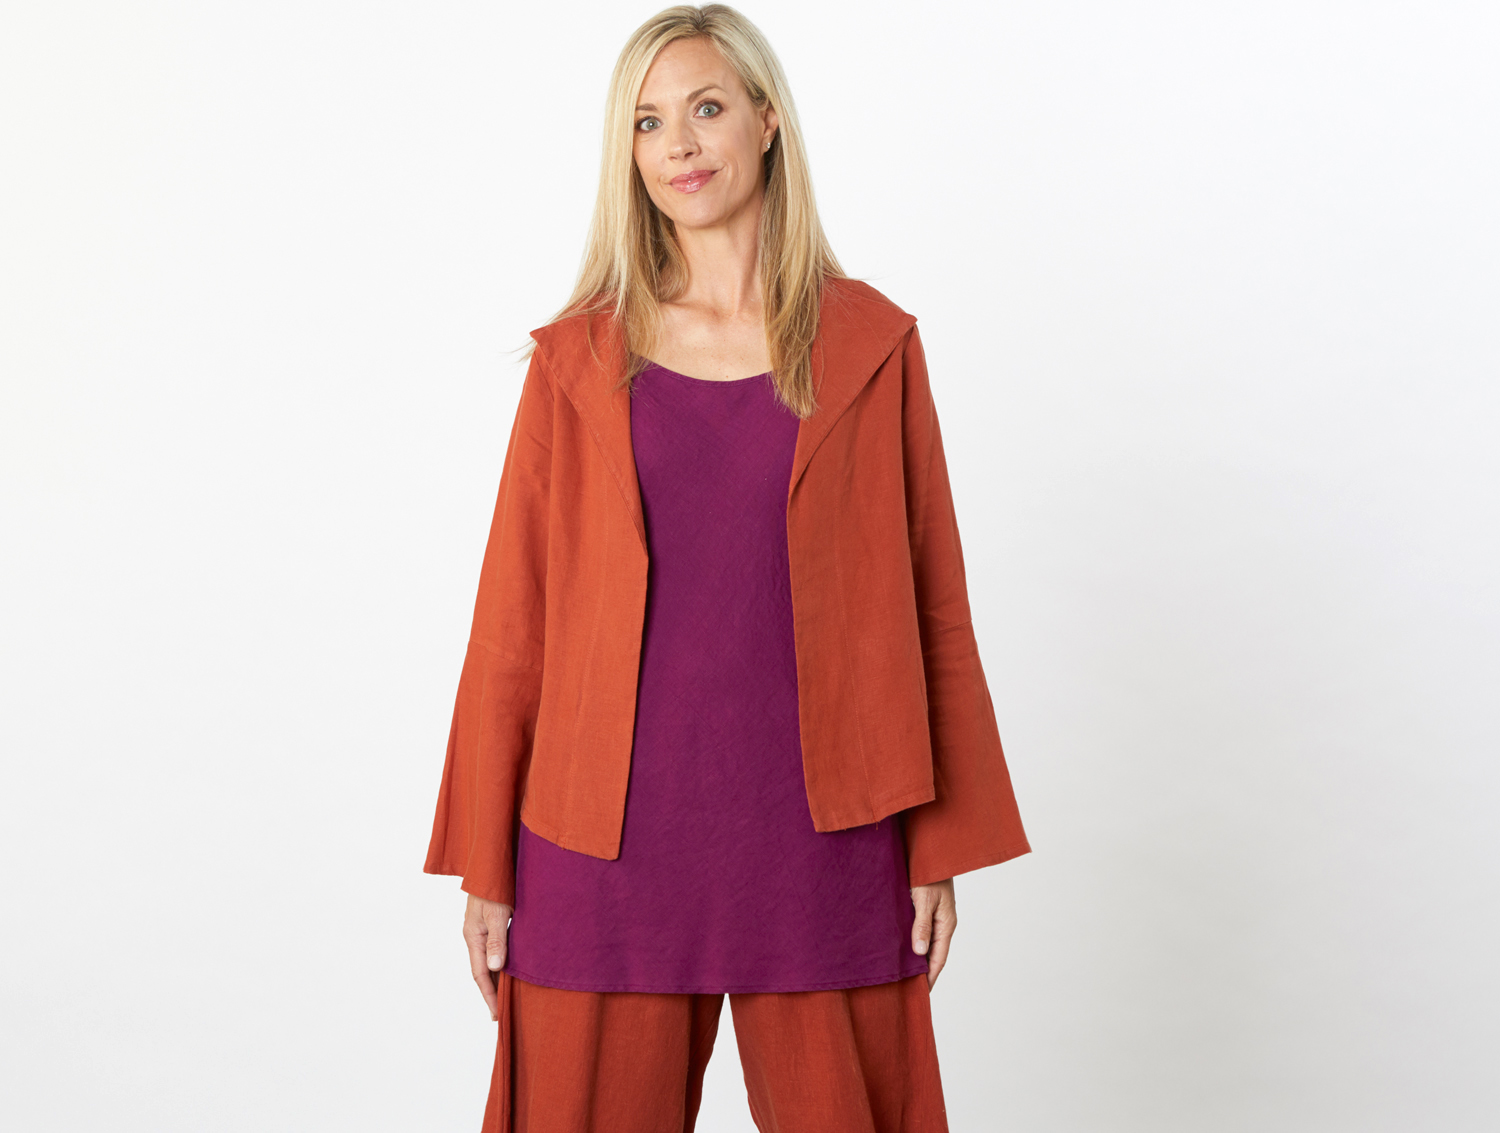 Eleni Jacket in Viceroy, Lucille Tunic in Kir Light Linen, Seamus Pant in Viceroy Heavy Linen